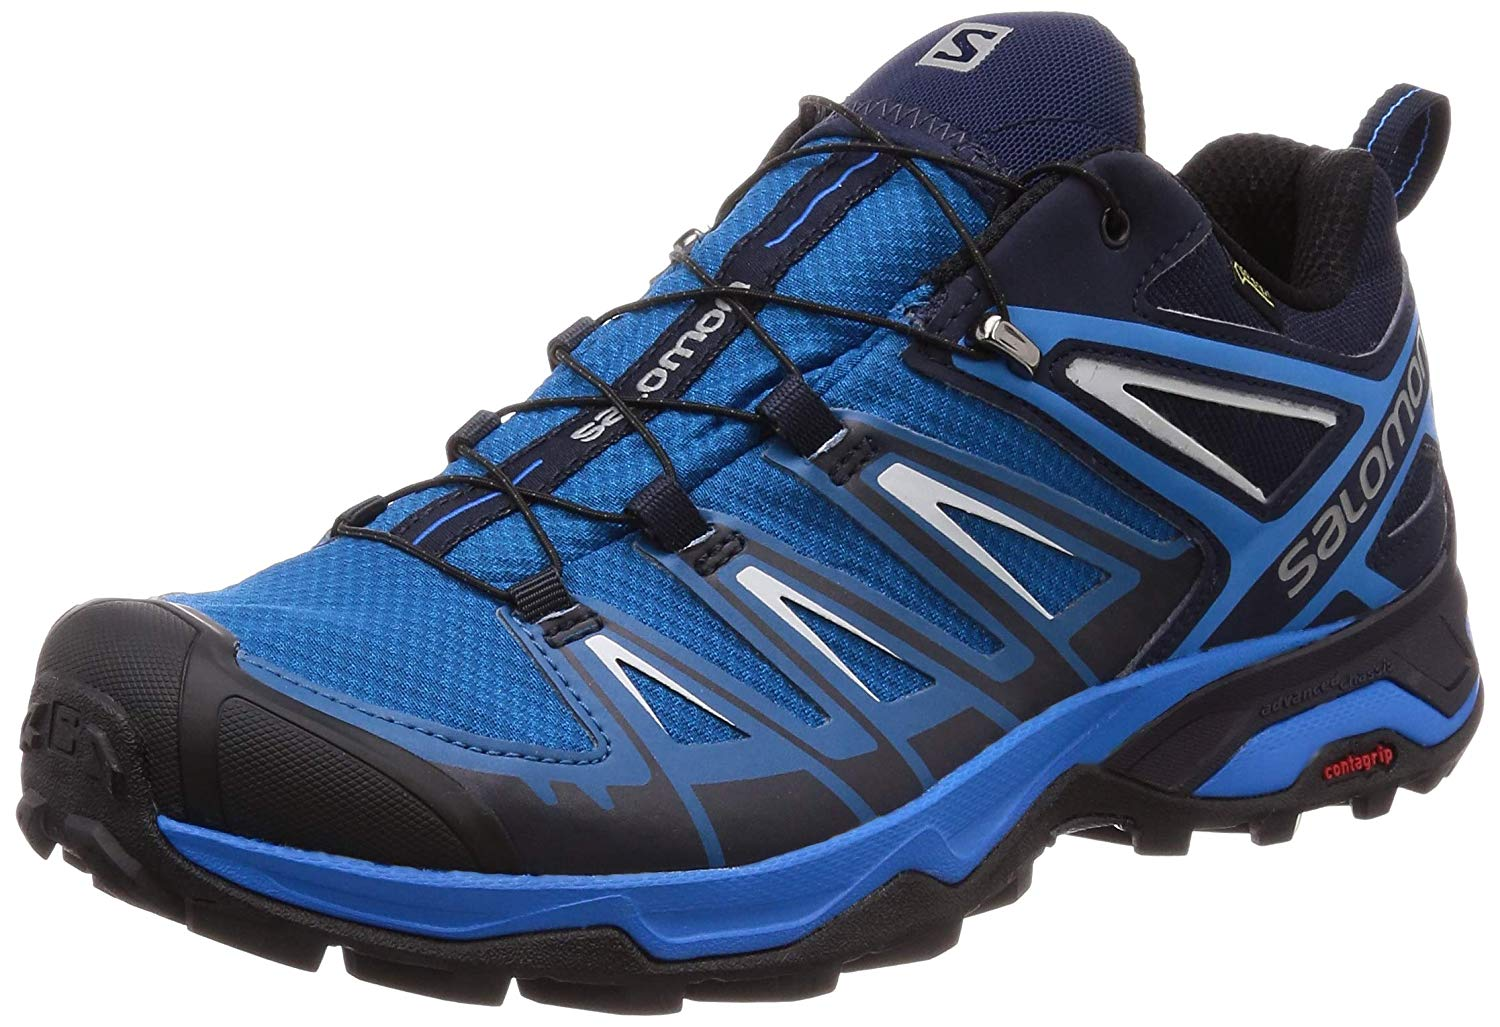 Zapatillas Salomon X Ultra 3 GTX Azul/Negro